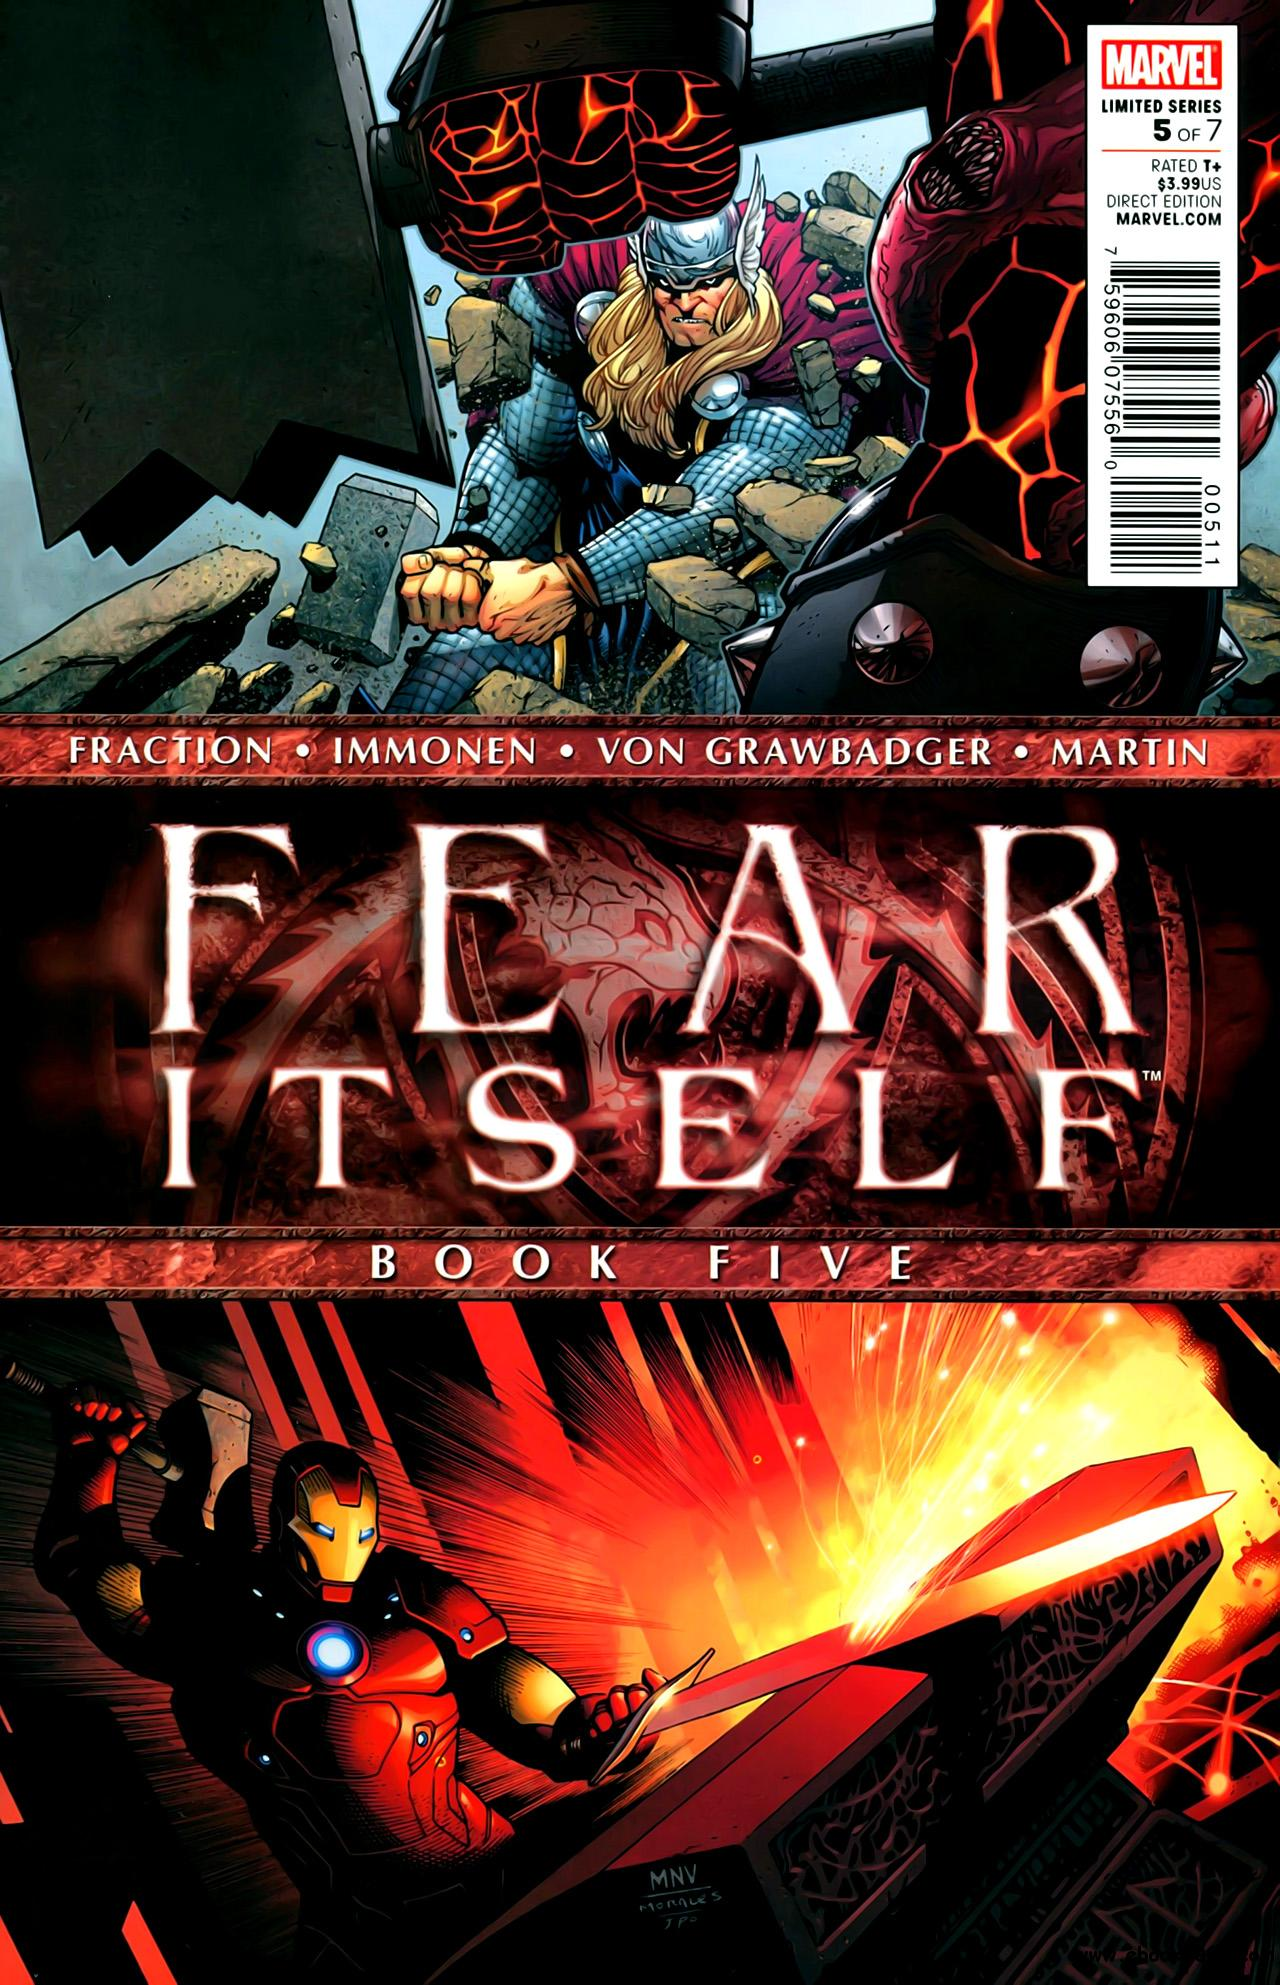 Fear Itself #5 (of 07) (2011) free download